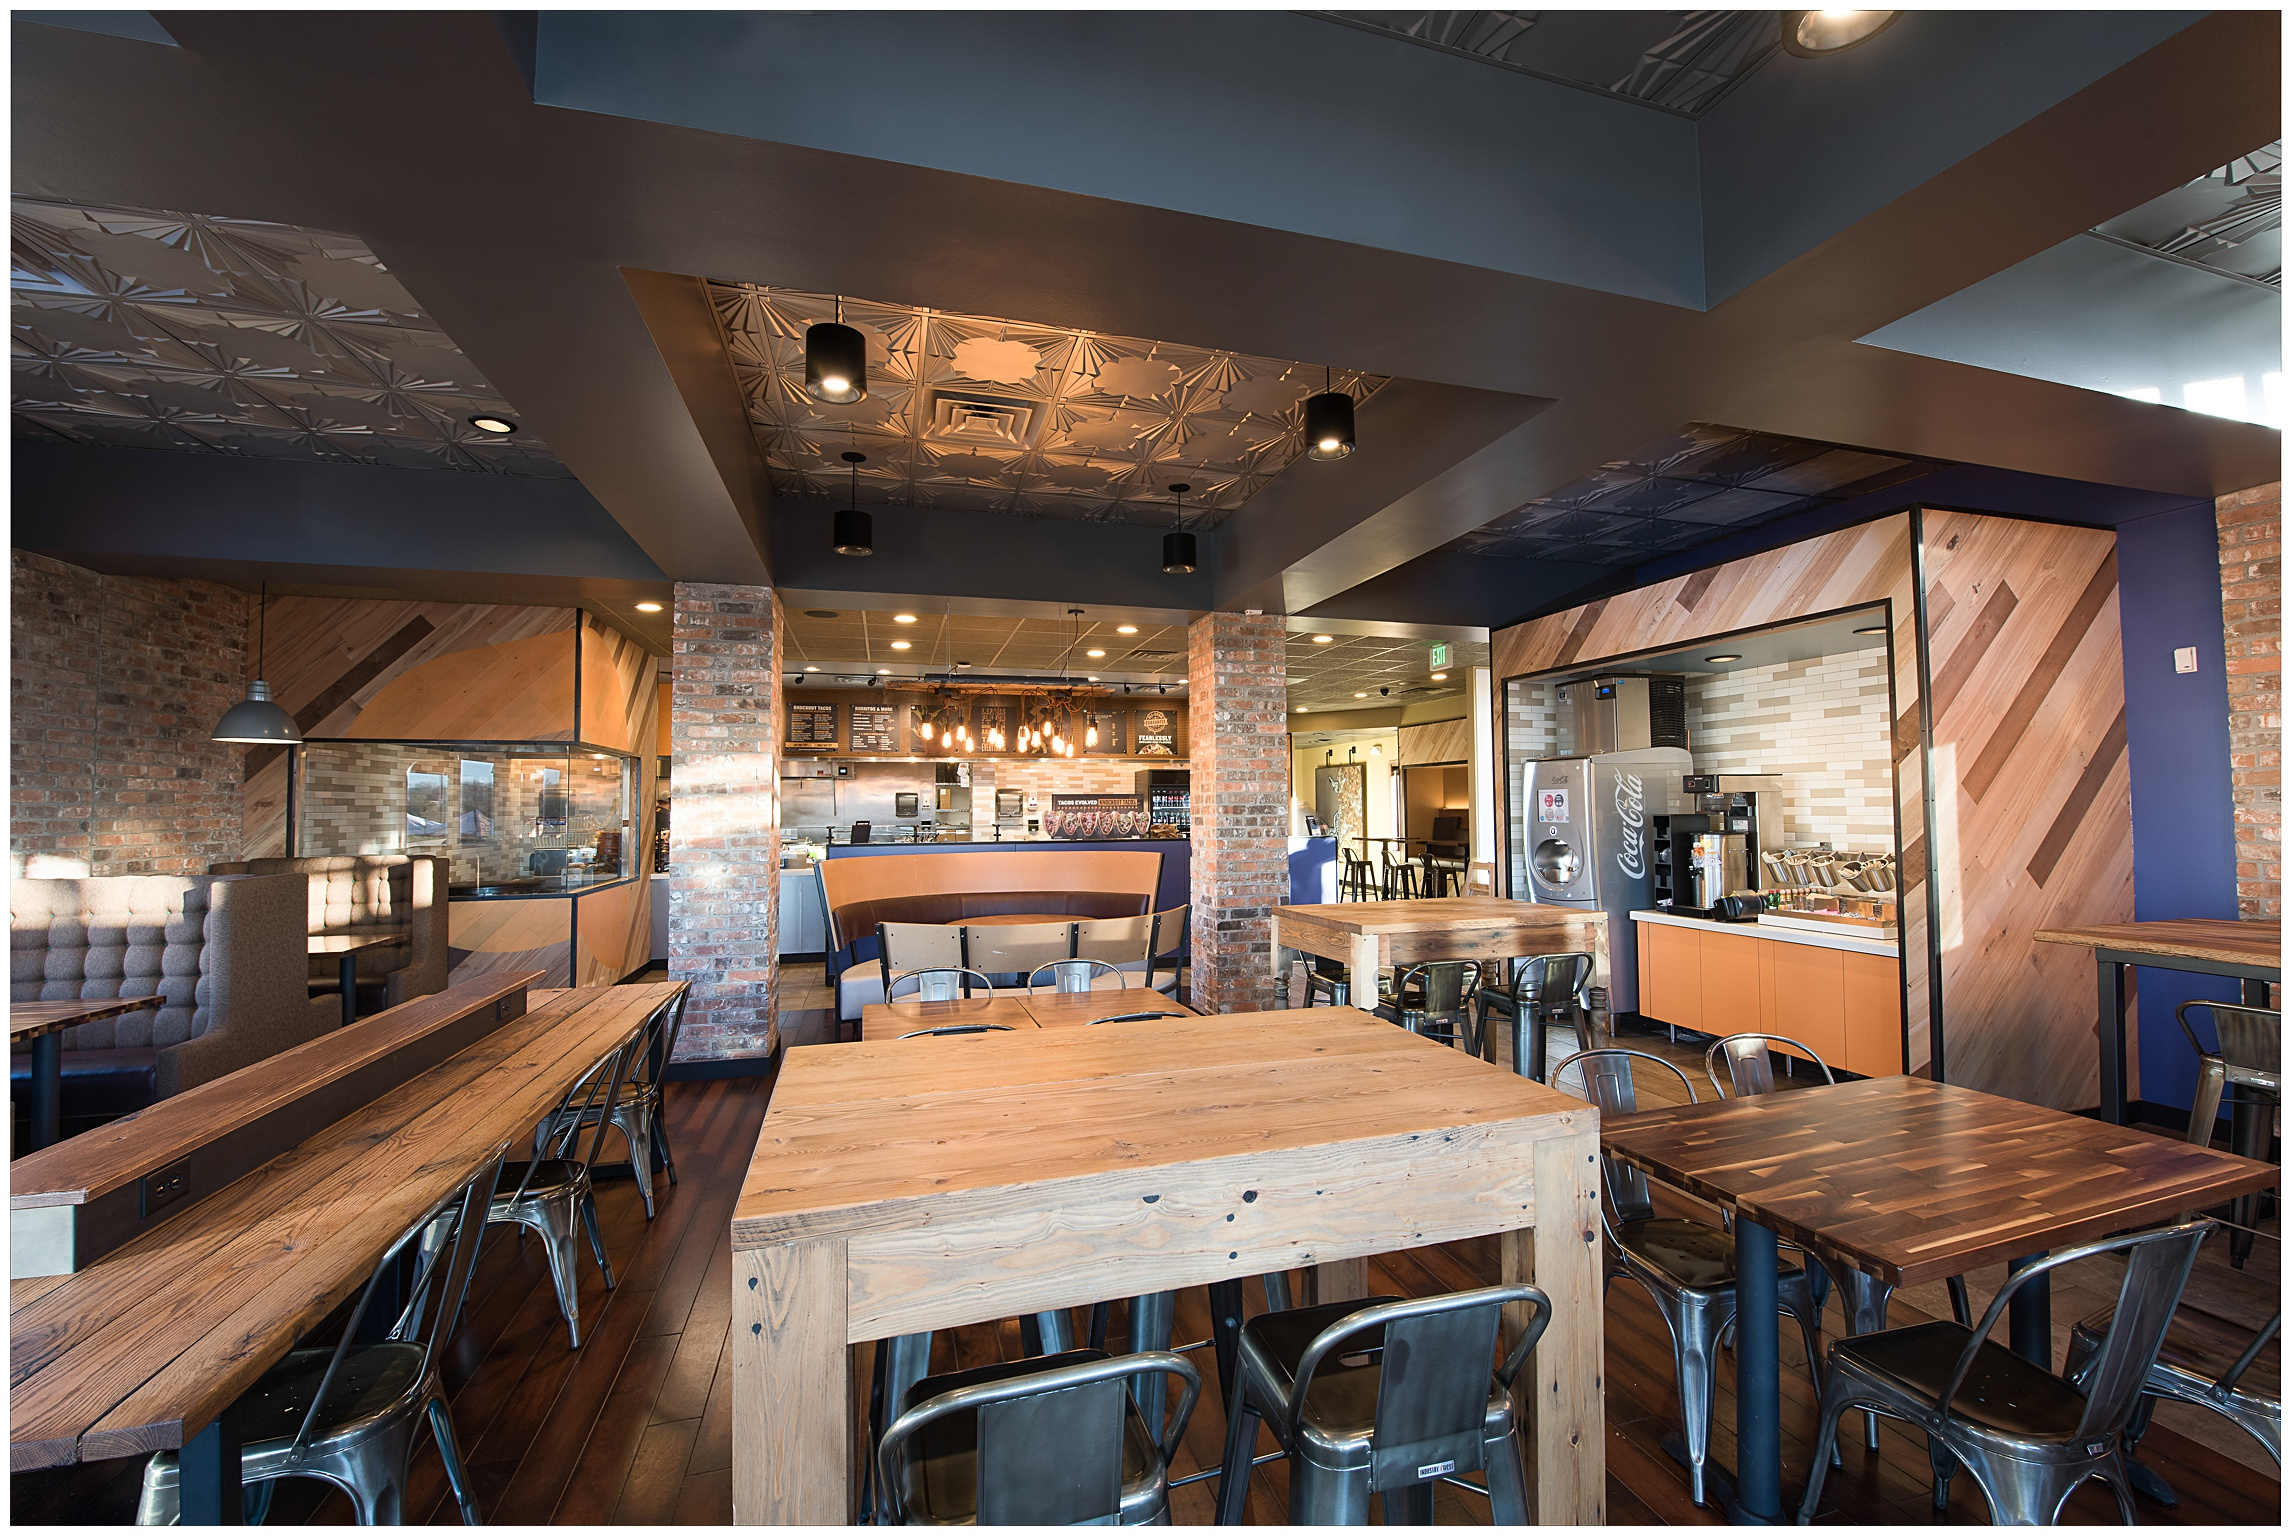 A brand new and redesigned dining room in a Qdoba Mexican Eats location in Kansas City, Missouri awaits hungry customers. Corporate photography by Sonja Salzburg of Sonja K Photography.